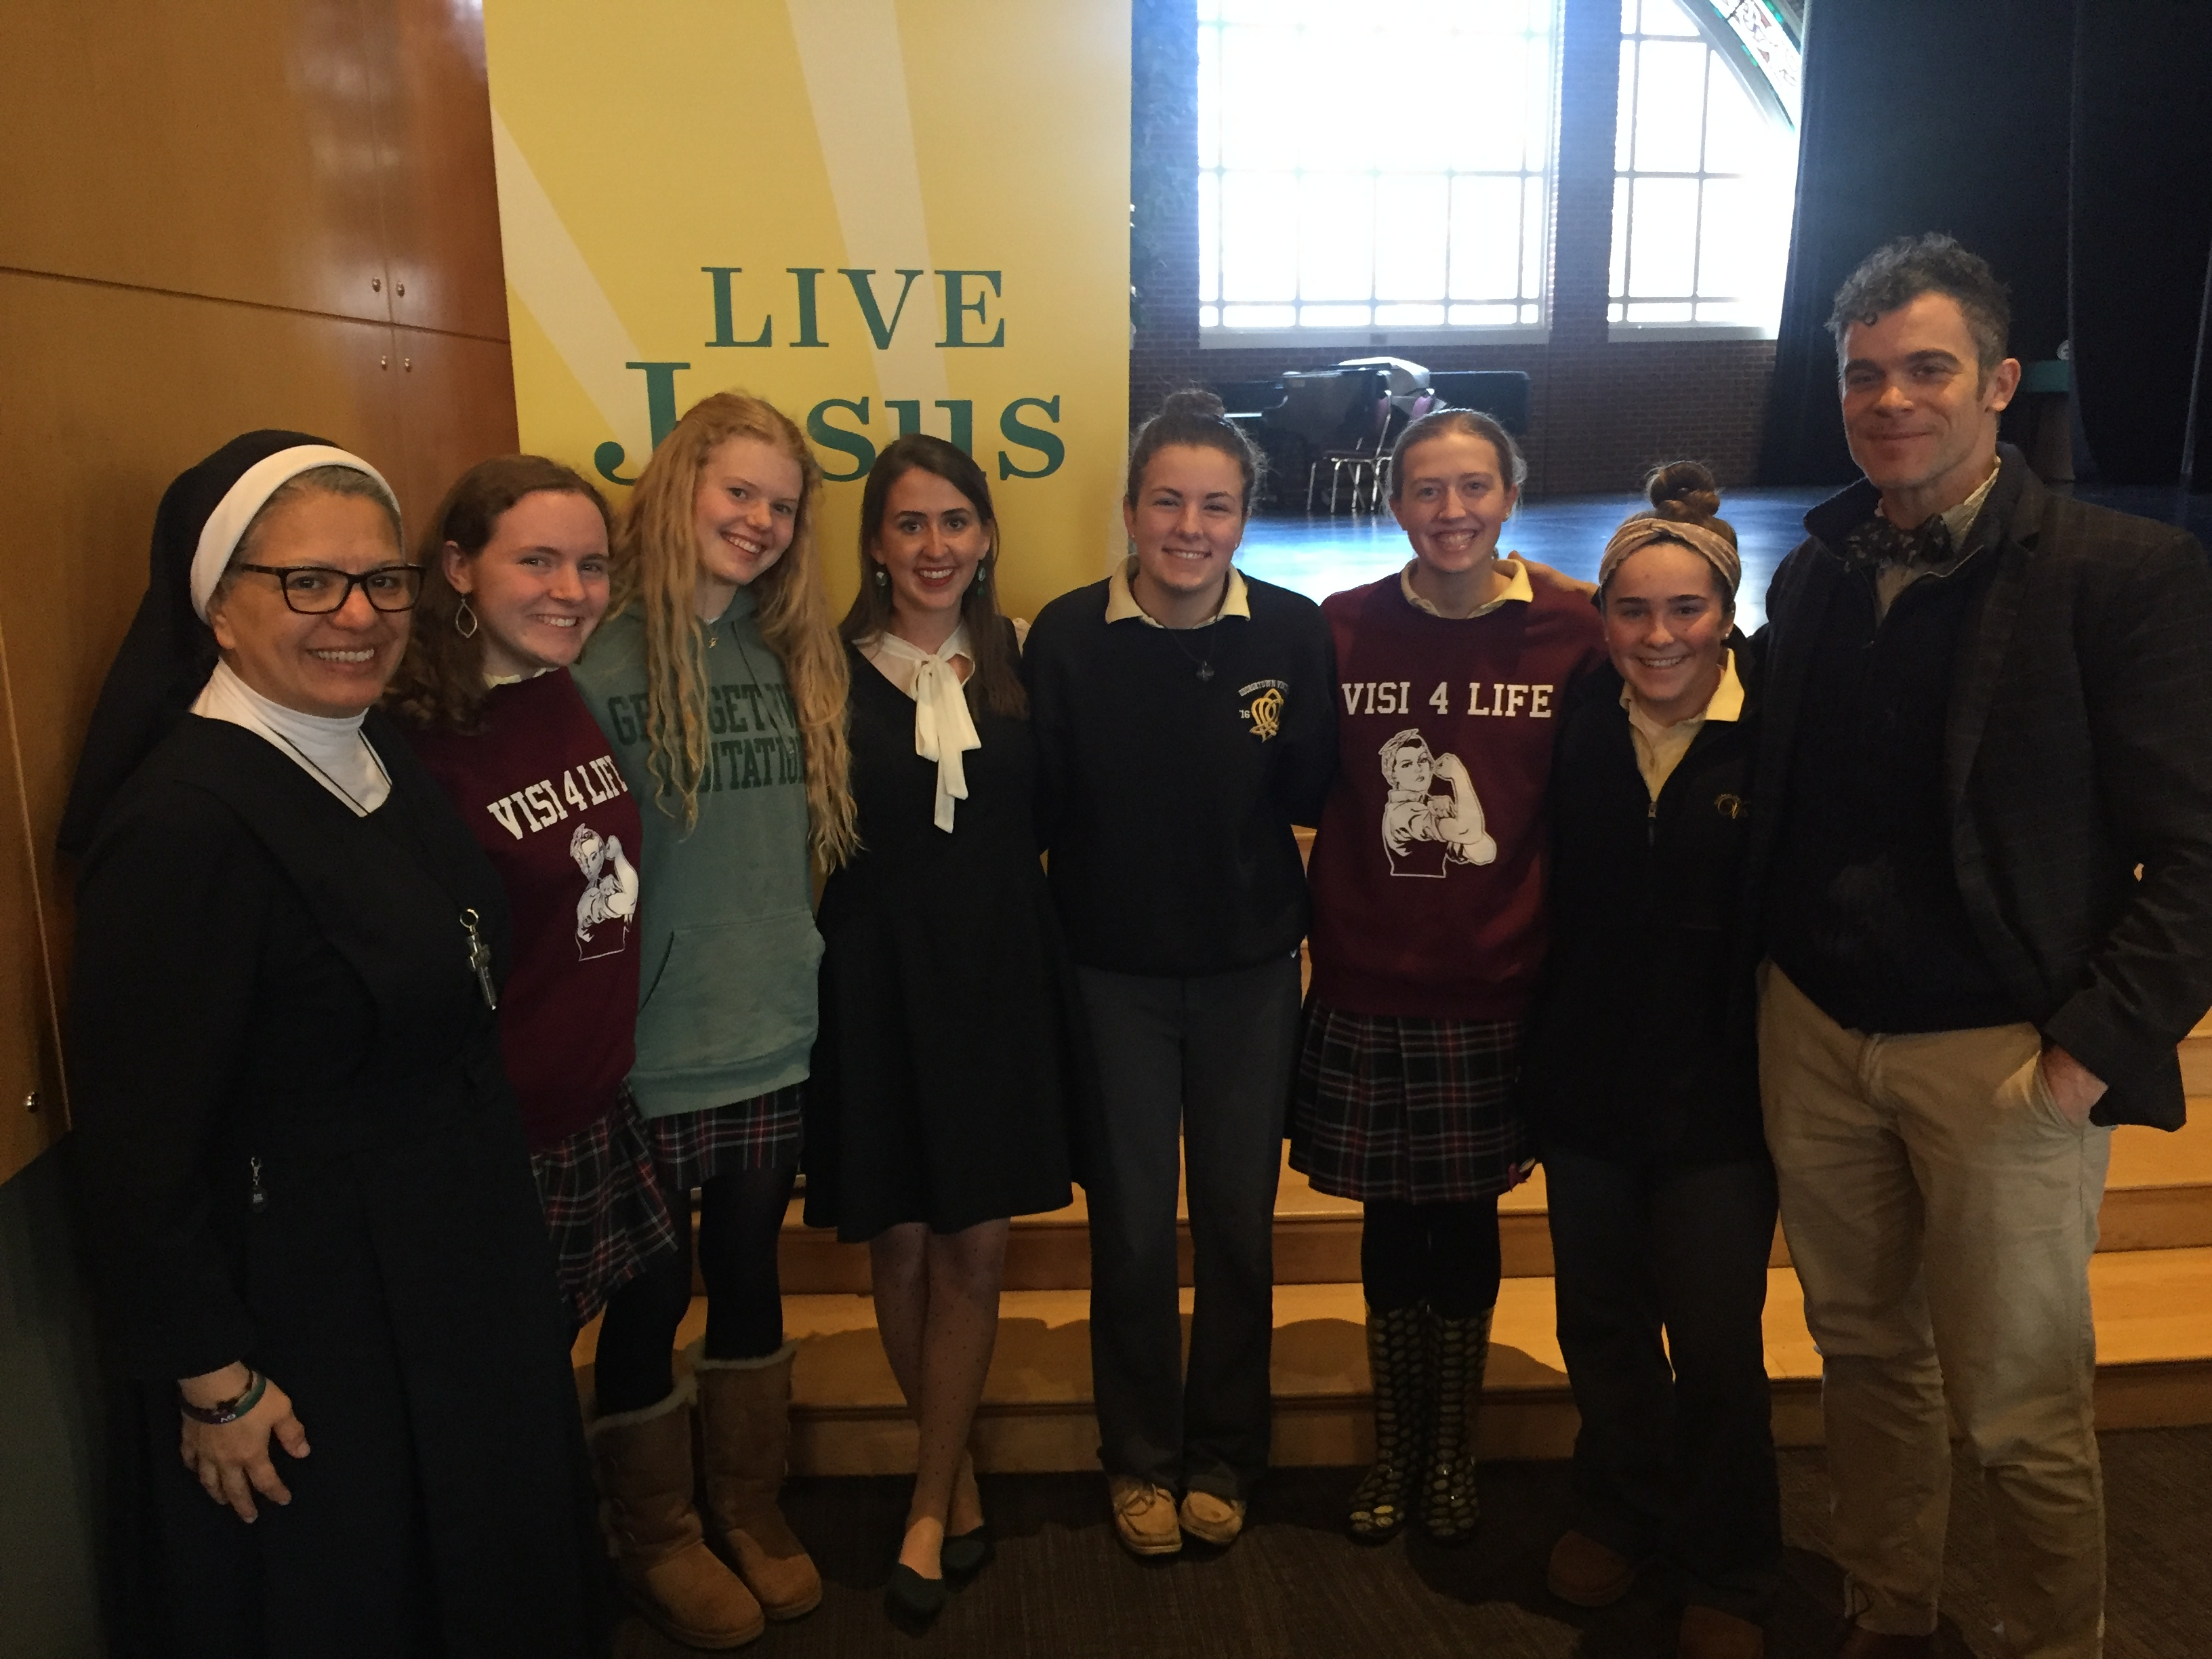 Pro-Life Activist Jeanne Marie Hathway '16 Speaks to Visi Students